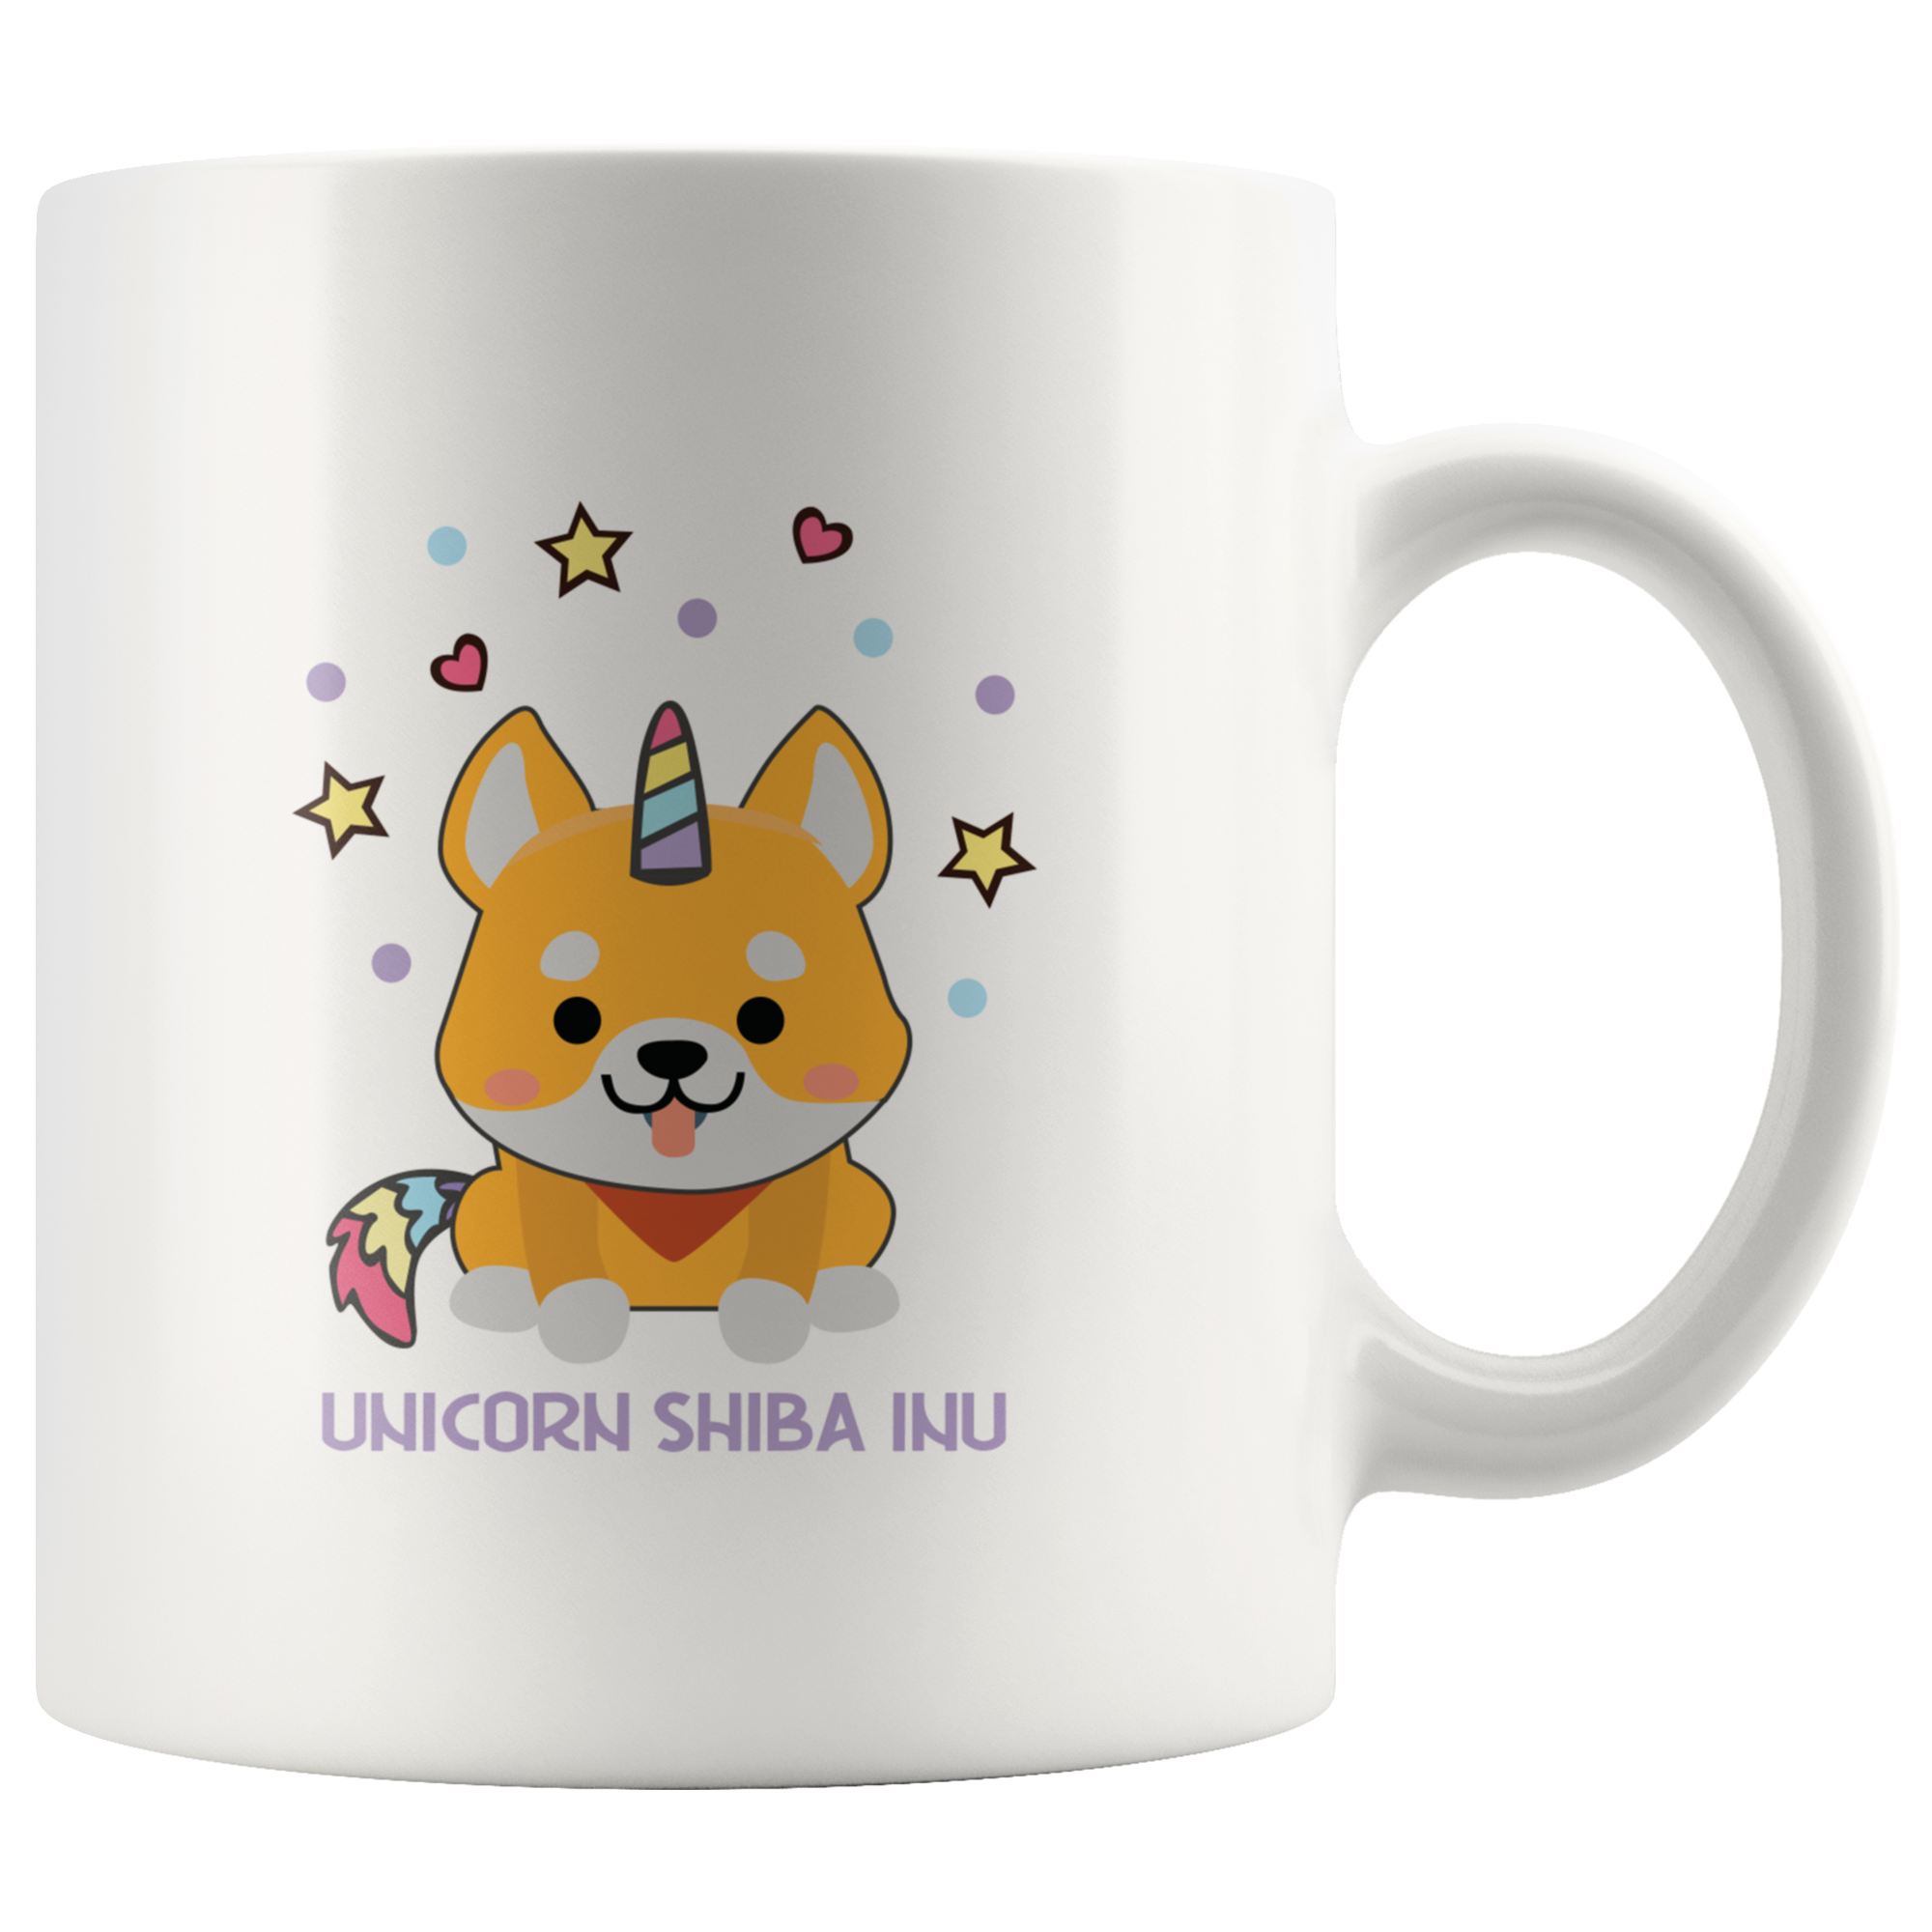 Unicorn Shiba Inu Japanese Dog Unicorn Fanatics Coffee Mug Gift 11 oz